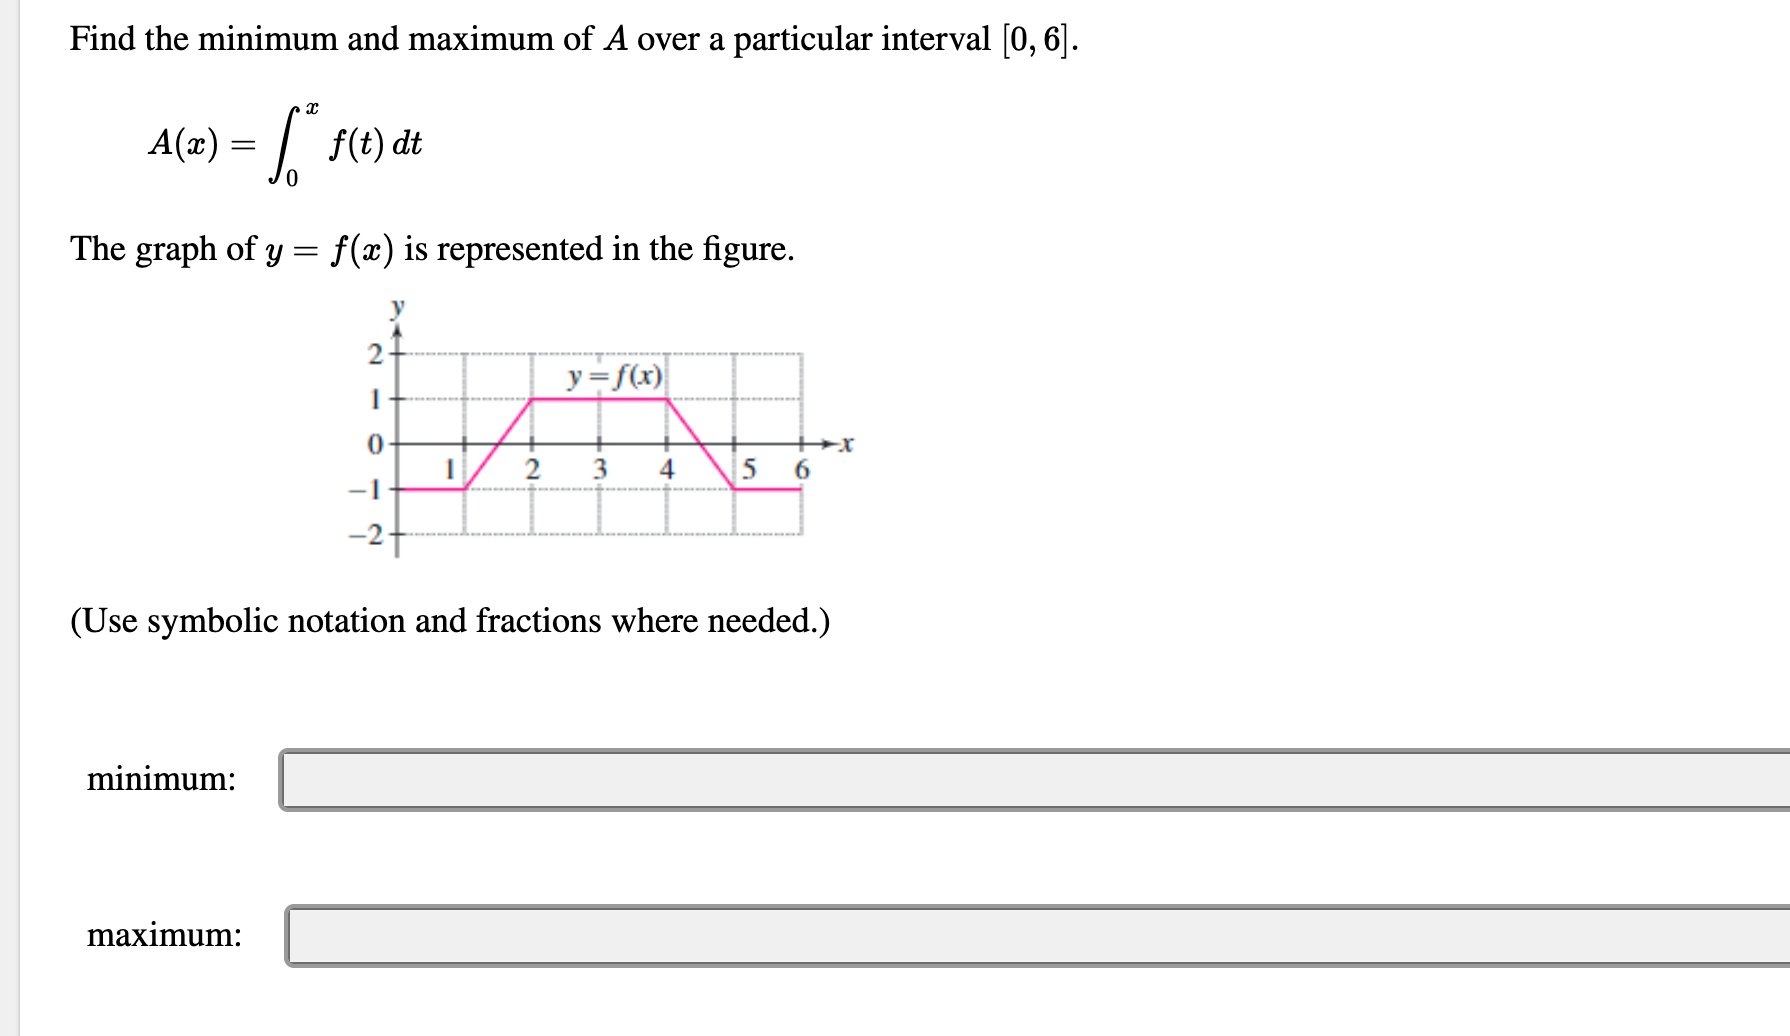 Find the minimum and maximum of A over a particular interval [0, 6]. (=) = /, f(t) dt The graph of y = f(x) is represented in the figure. y=f(x) 5 6 3 -1 -2+ (Use symbolic notation and fractions where needed.) minimum: maximum: